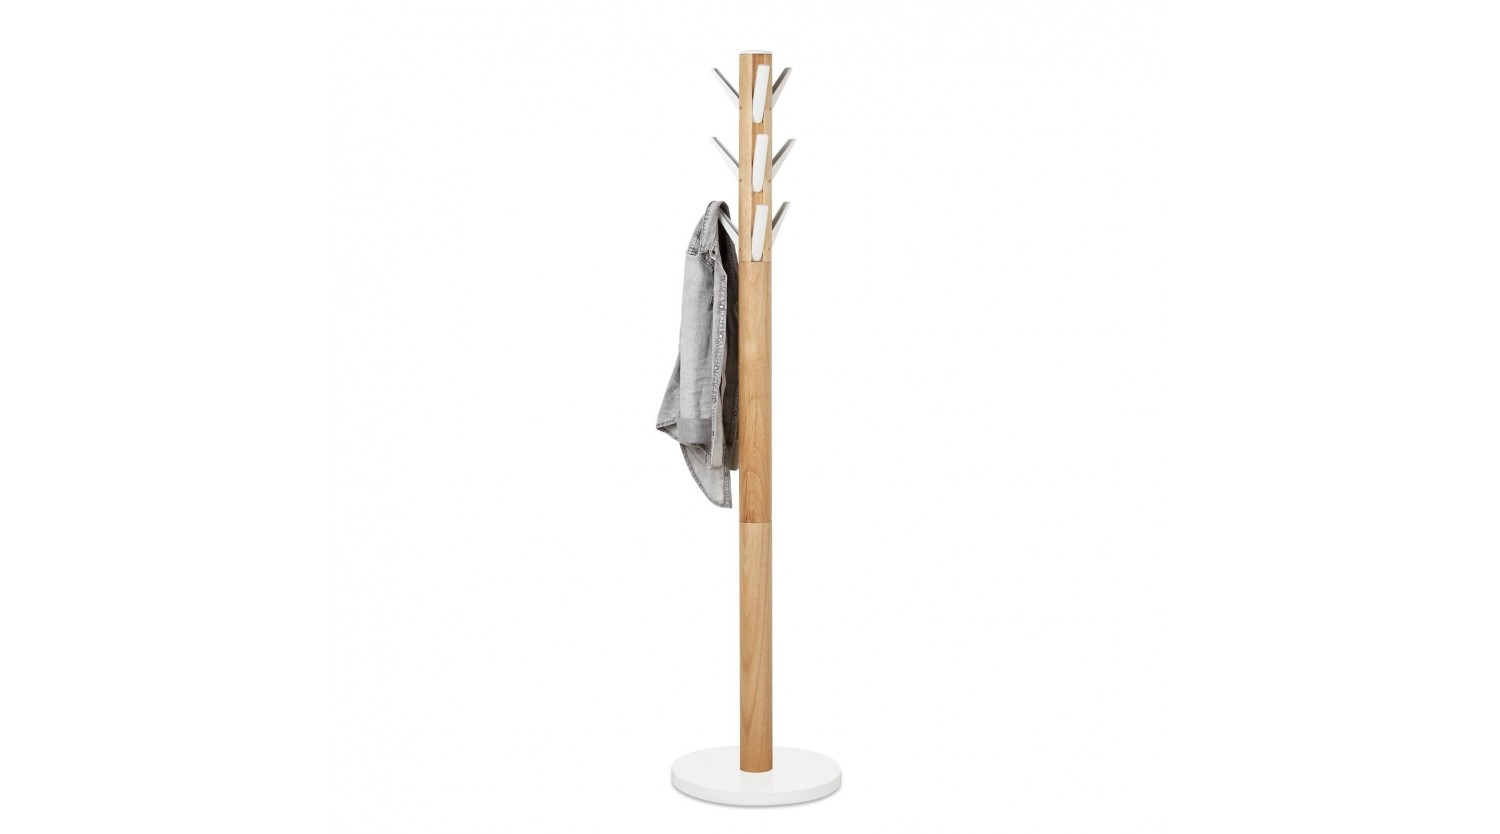 Umbra Flapper Coat Rack White Natural Design Is This